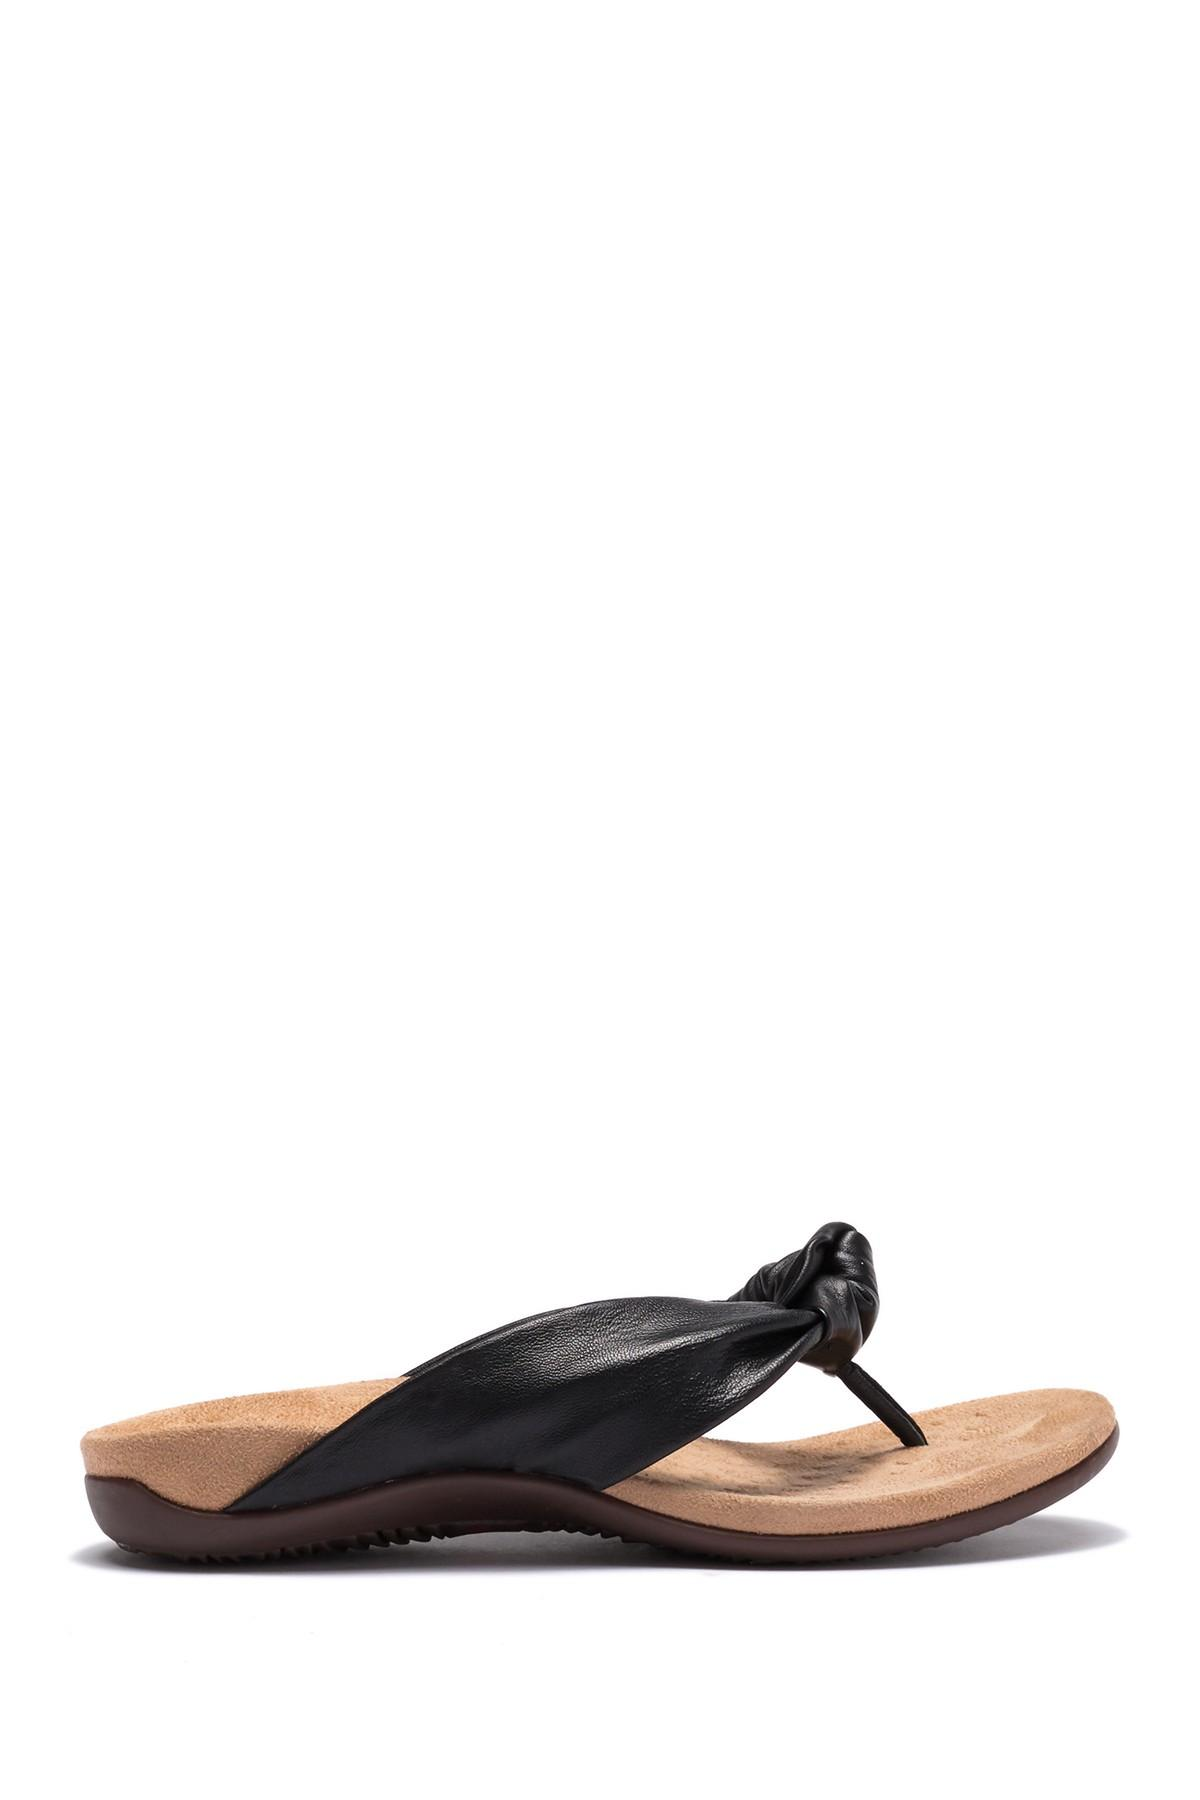 8a0aed543 Lyst - Vionic Pippa Twisted Knot Sandal - Wide Width Available in Black